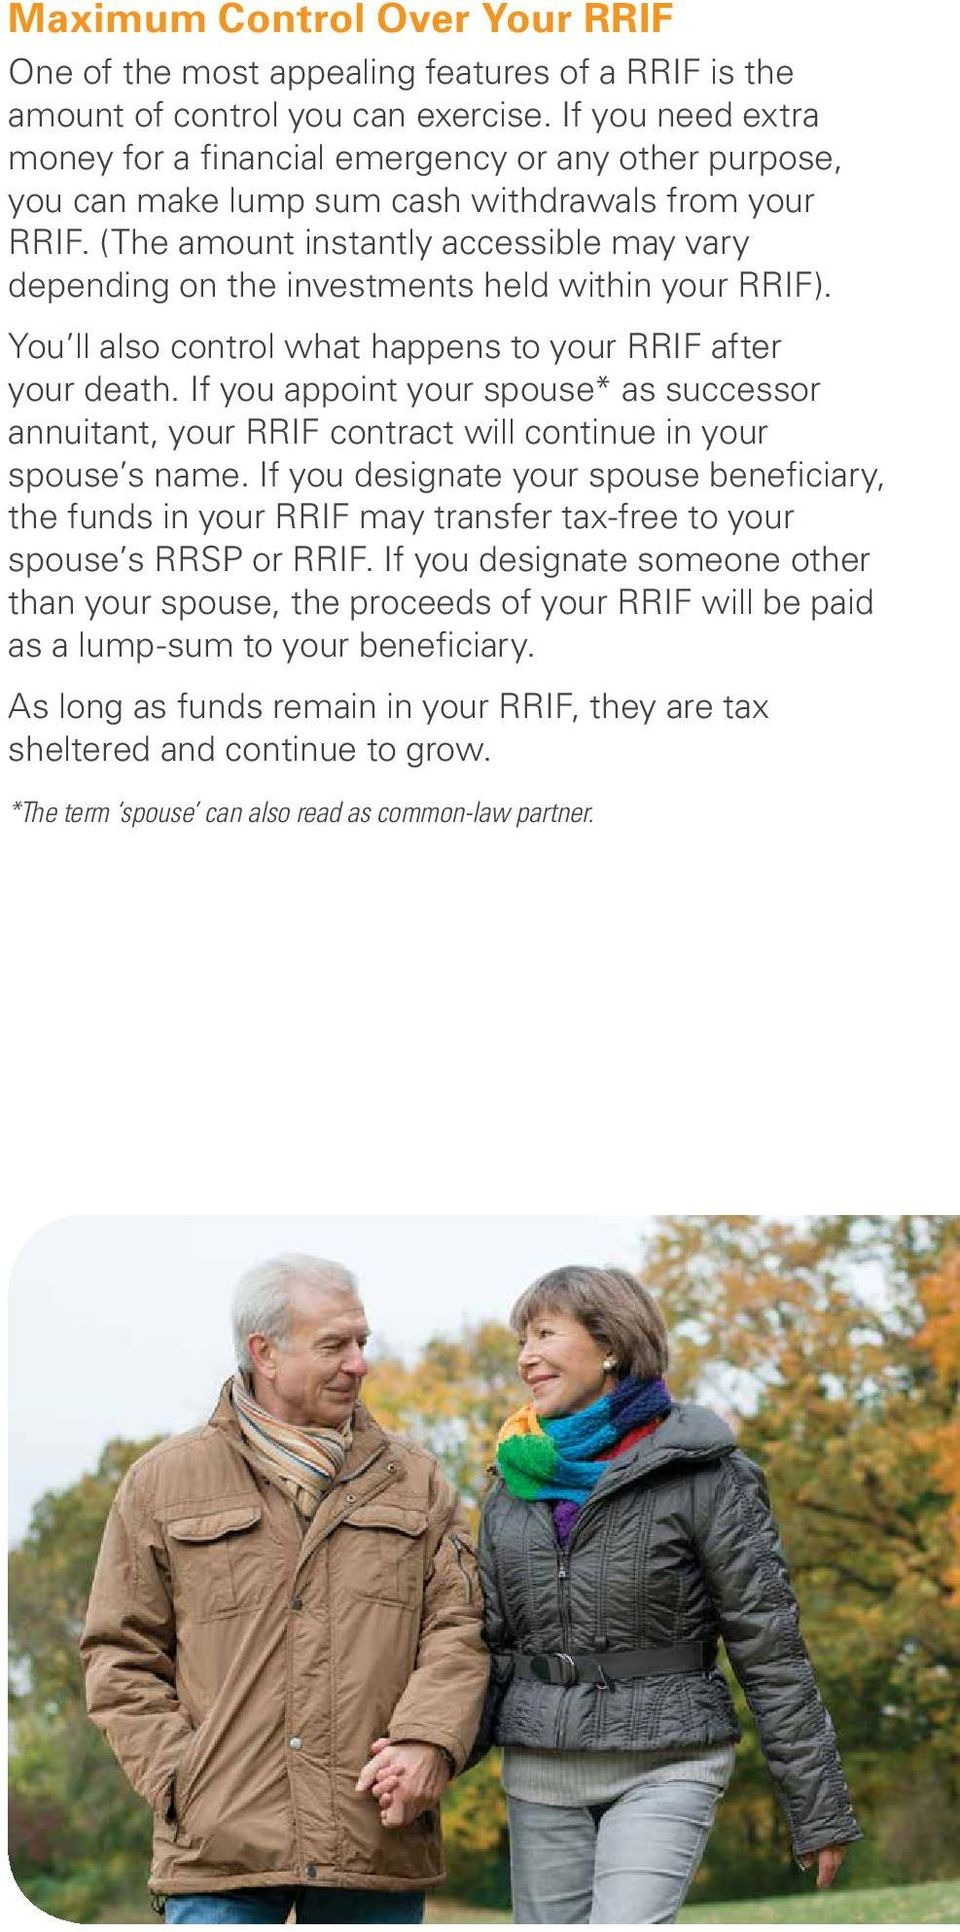 (The amount instantly accessible may vary depending on the investments held within your RRIF). You ll also control what happens to your RRIF after your death.